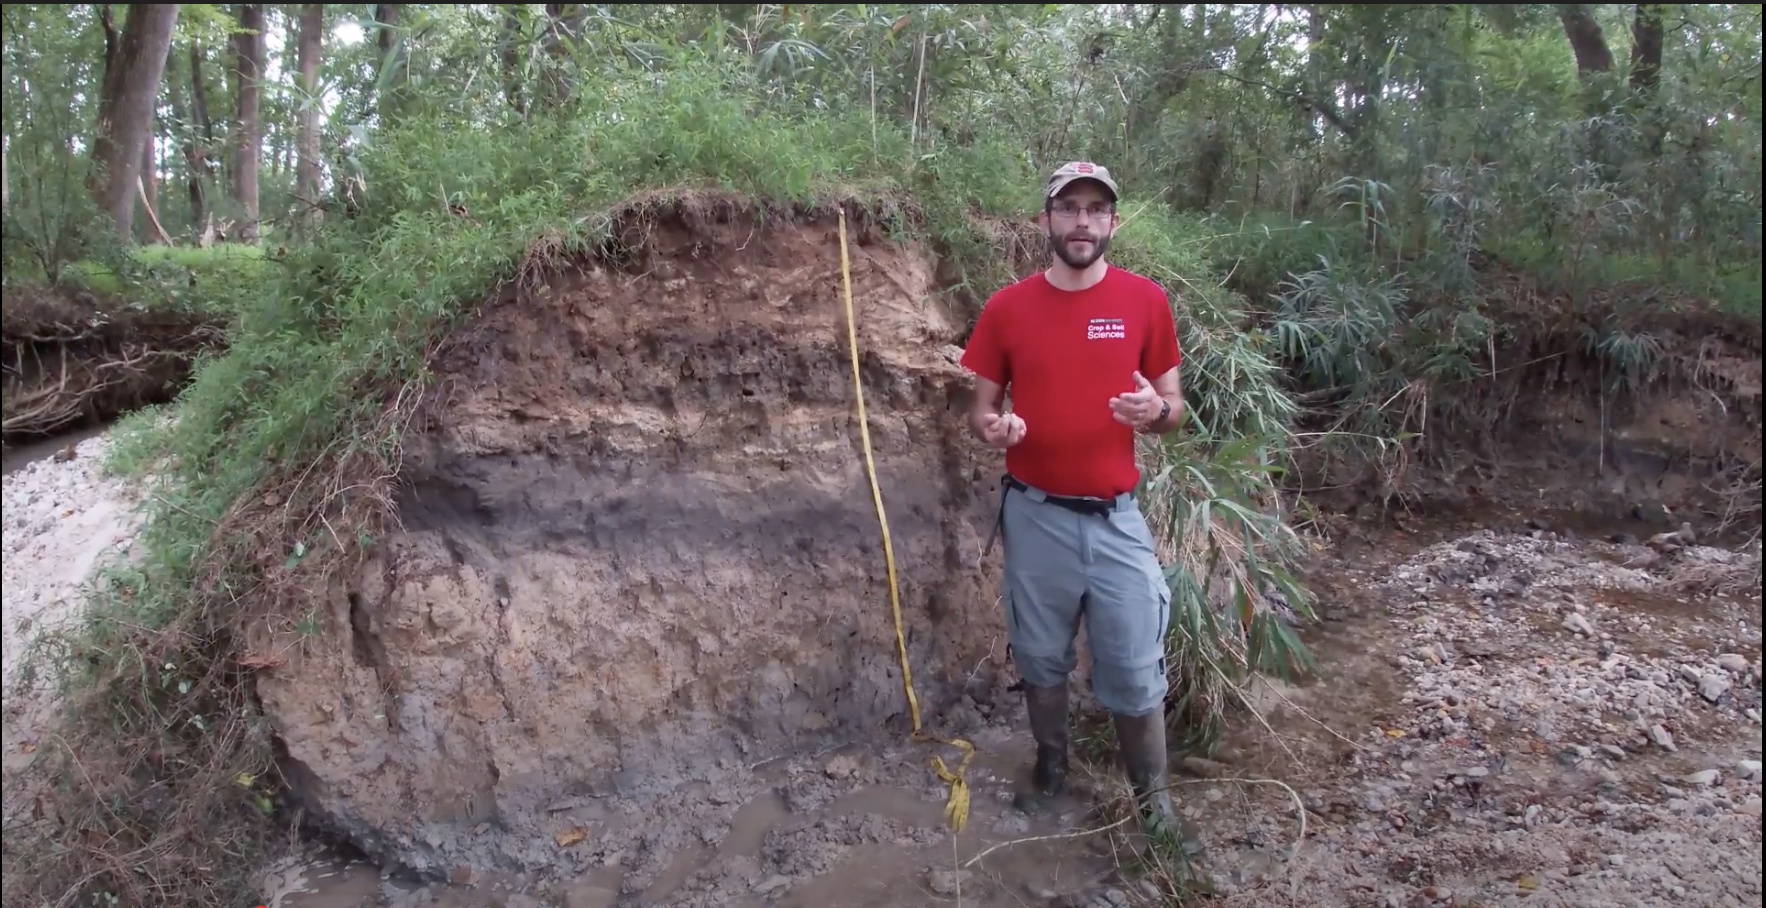 Man in red shirt teaches soil science